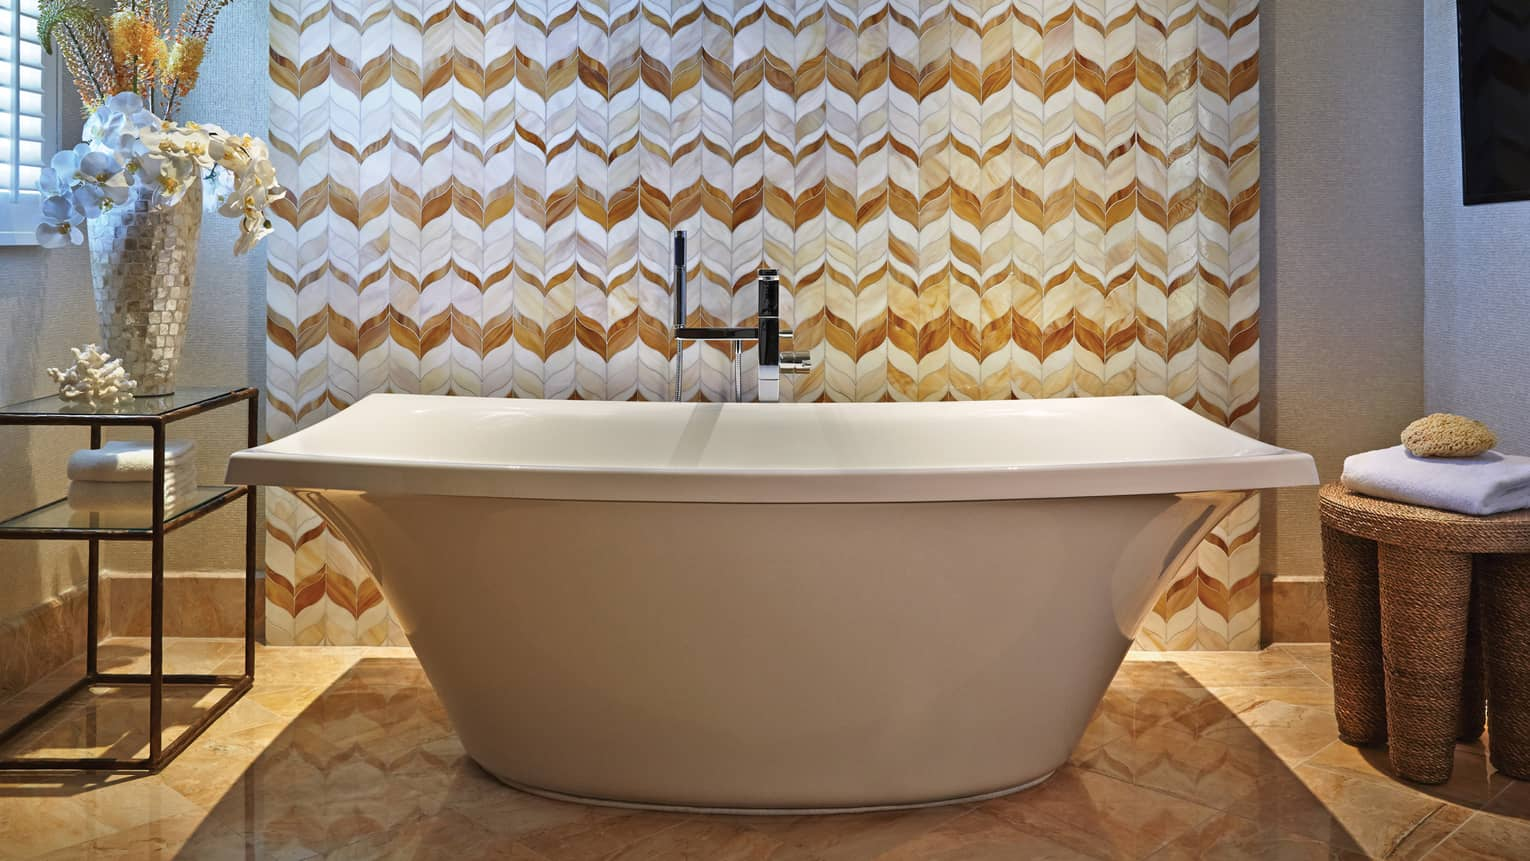 Maile Suite master bathroom with freestanding tub and patterned wall